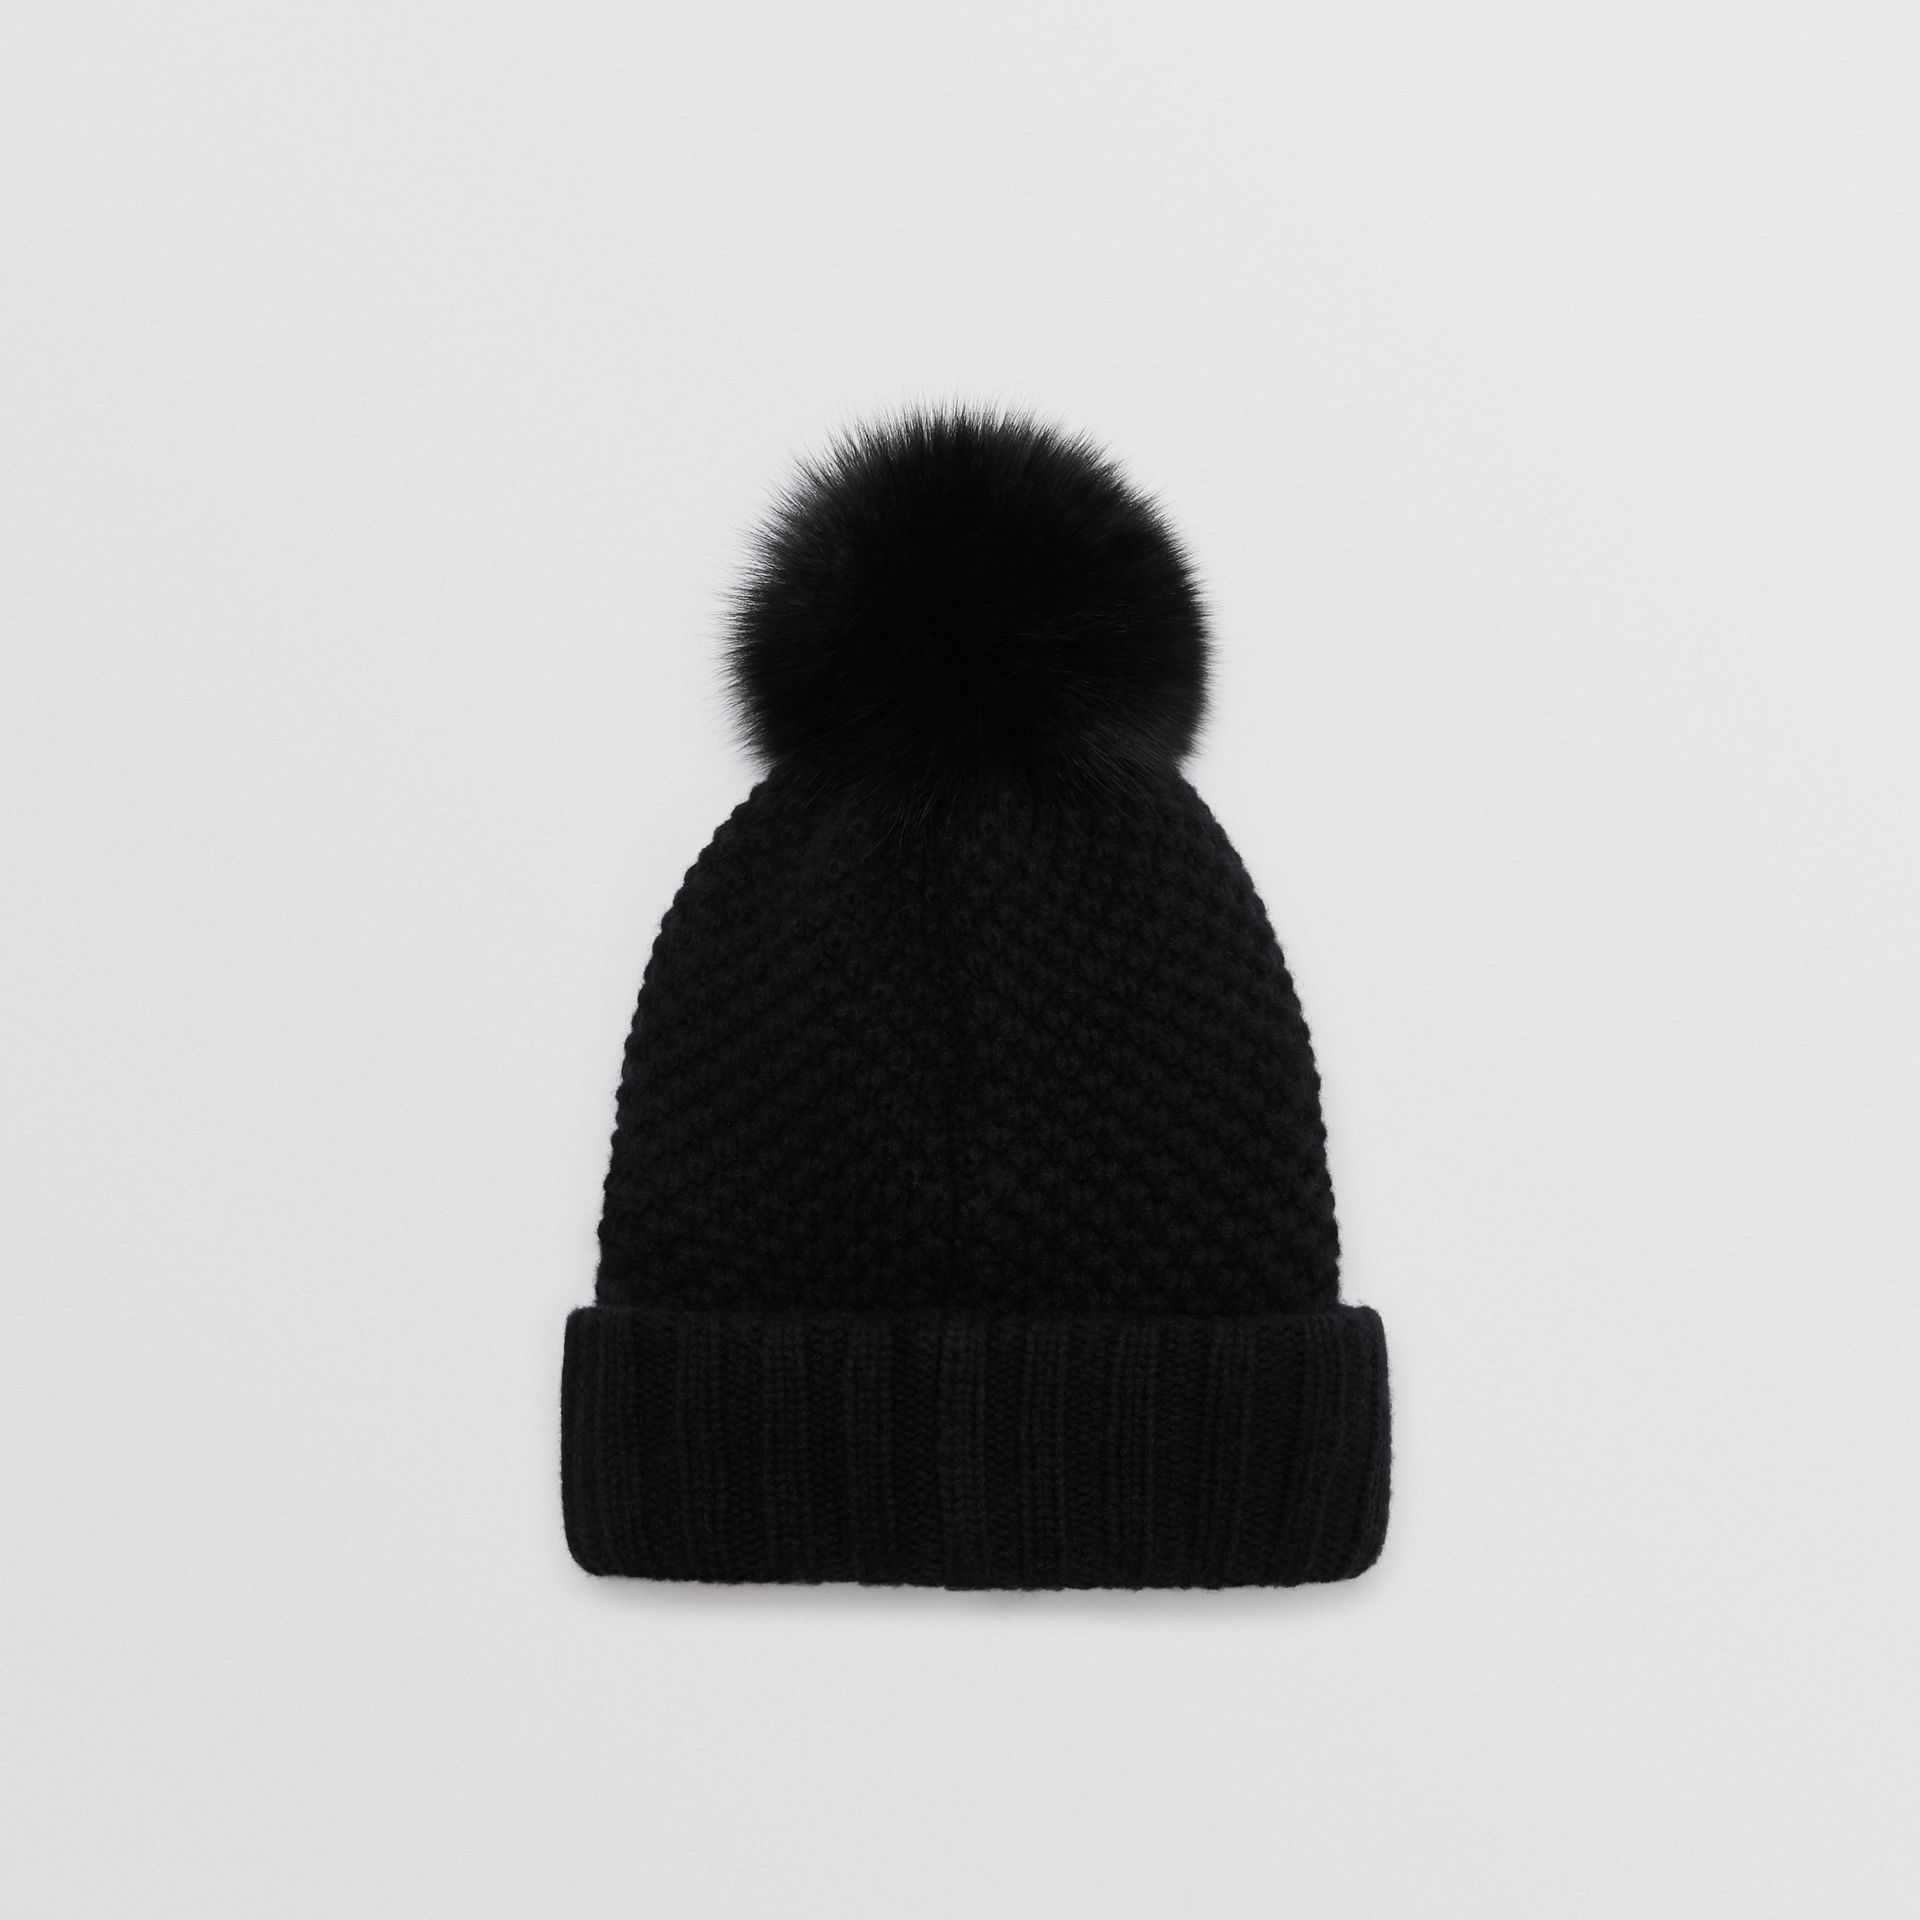 Fur Pom-Pom Beanie in Black - Women | Burberry - gallery image 2